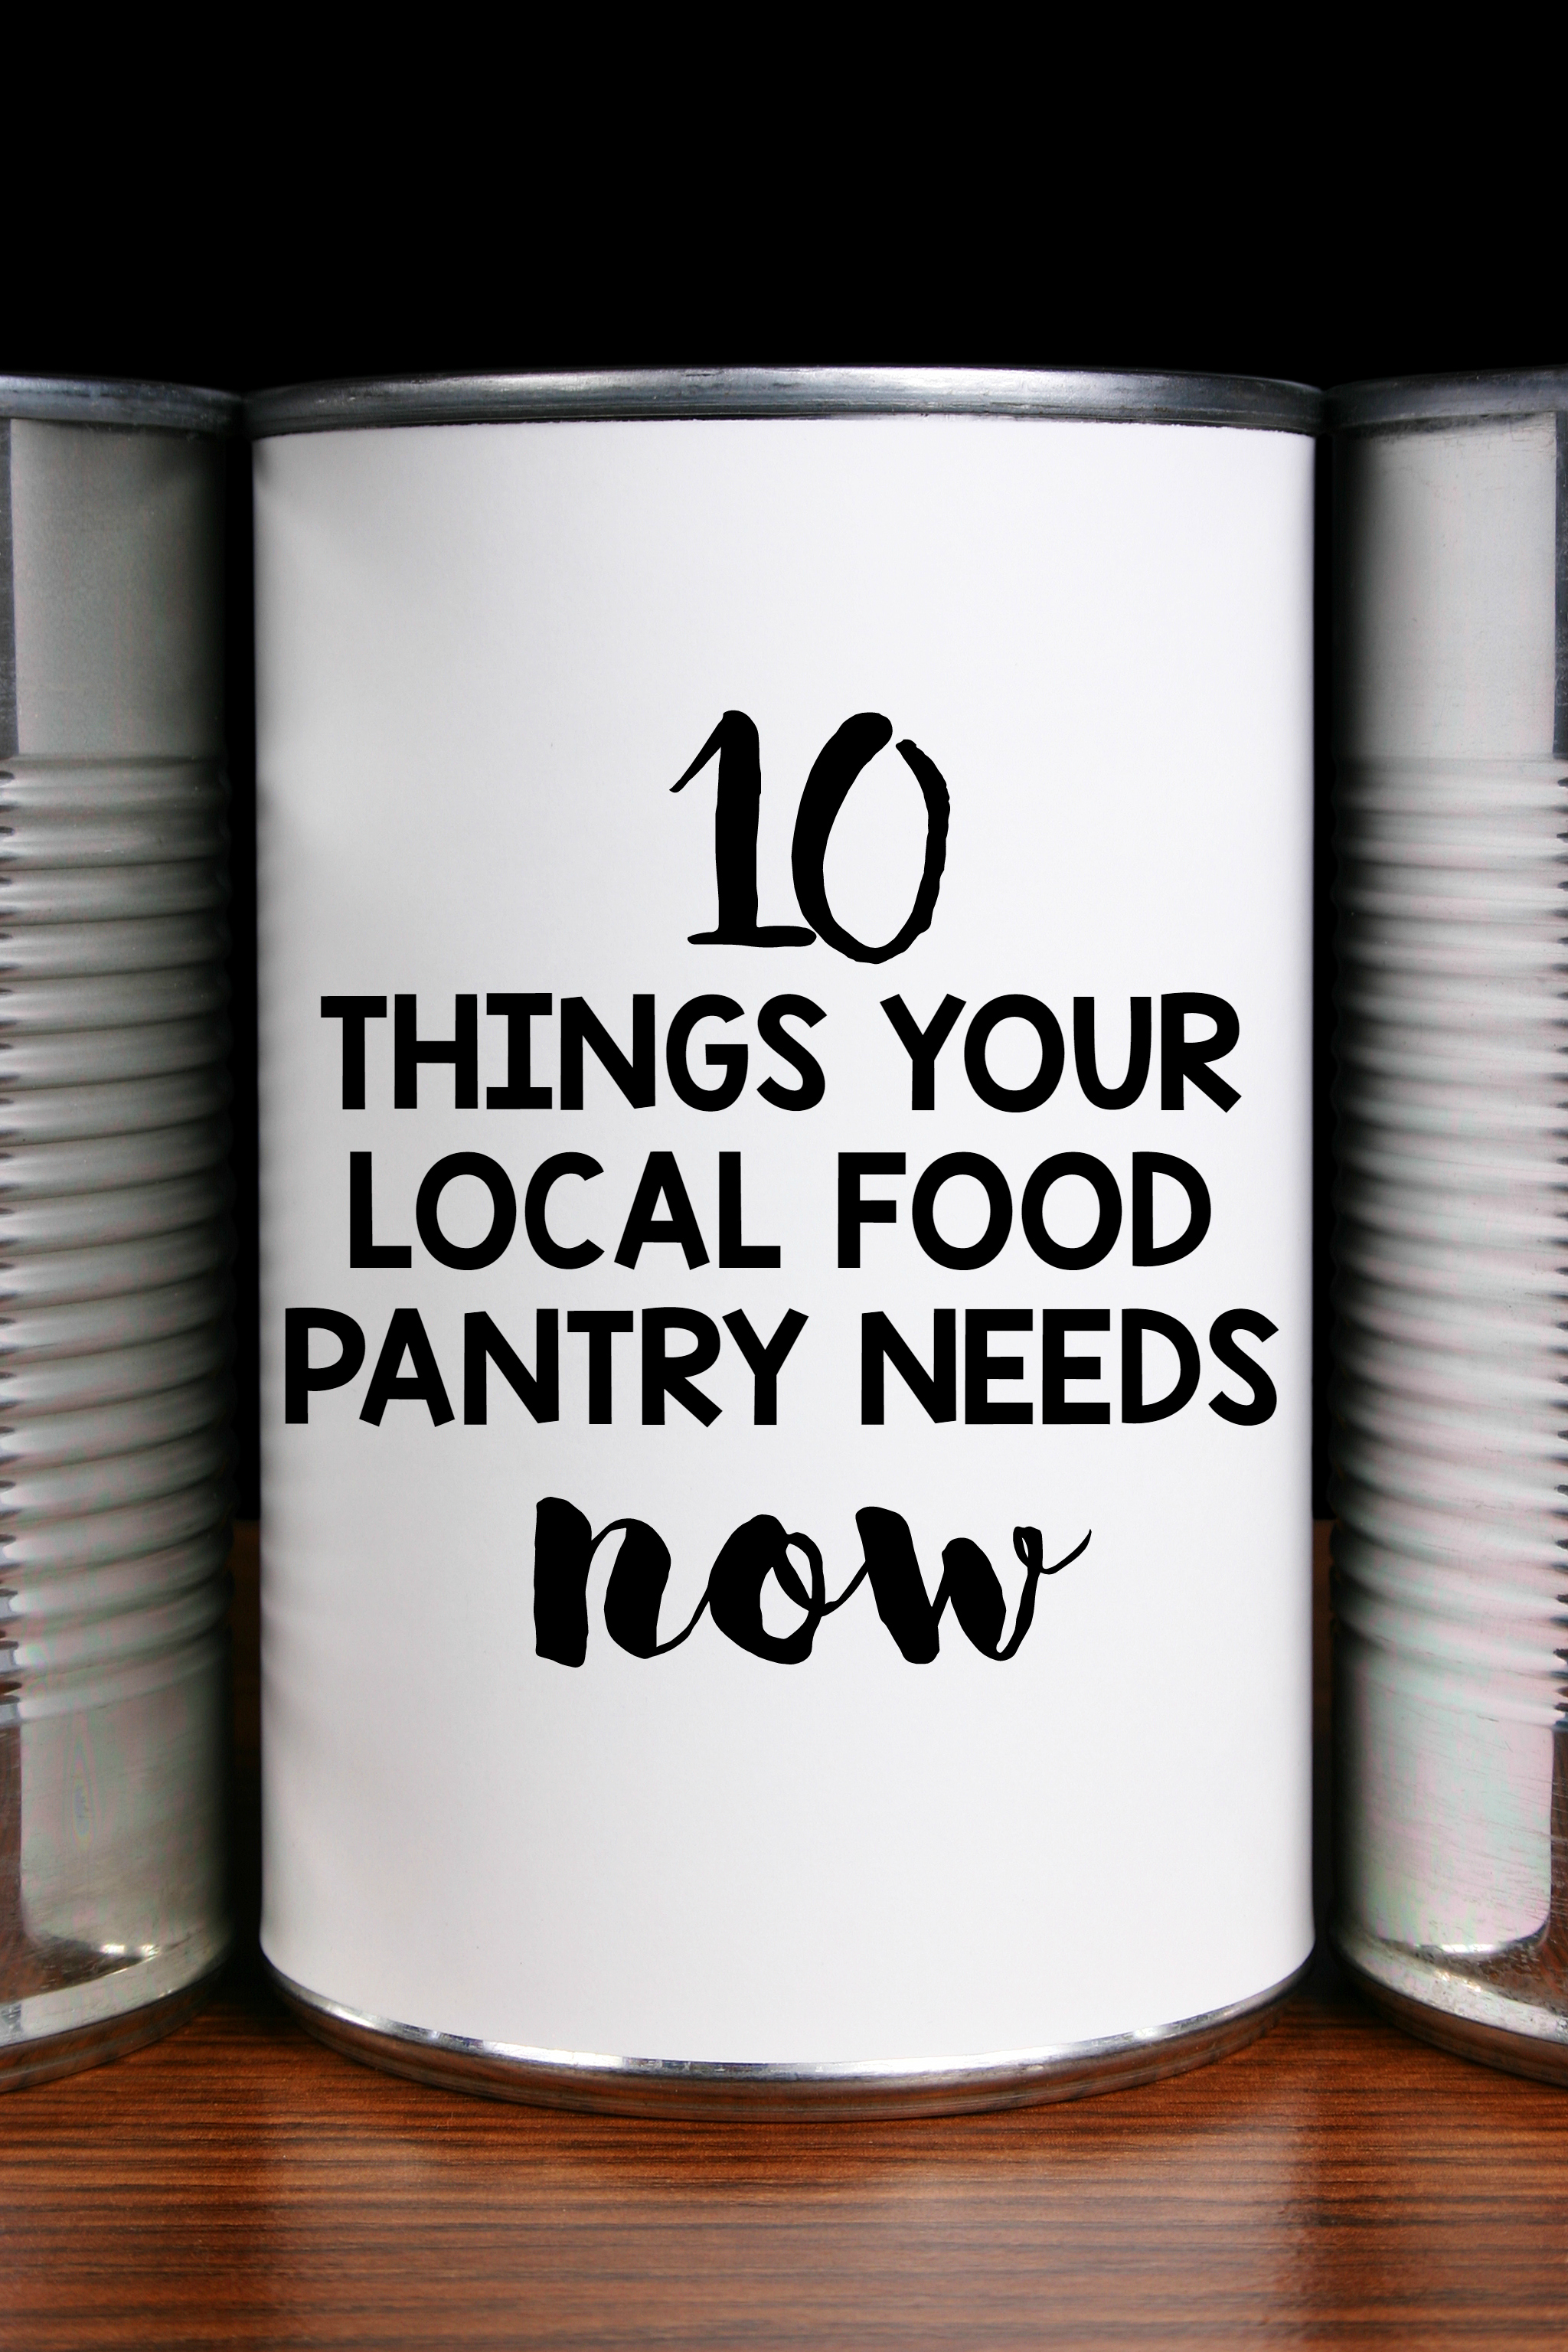 10 things your local food pantry needs now